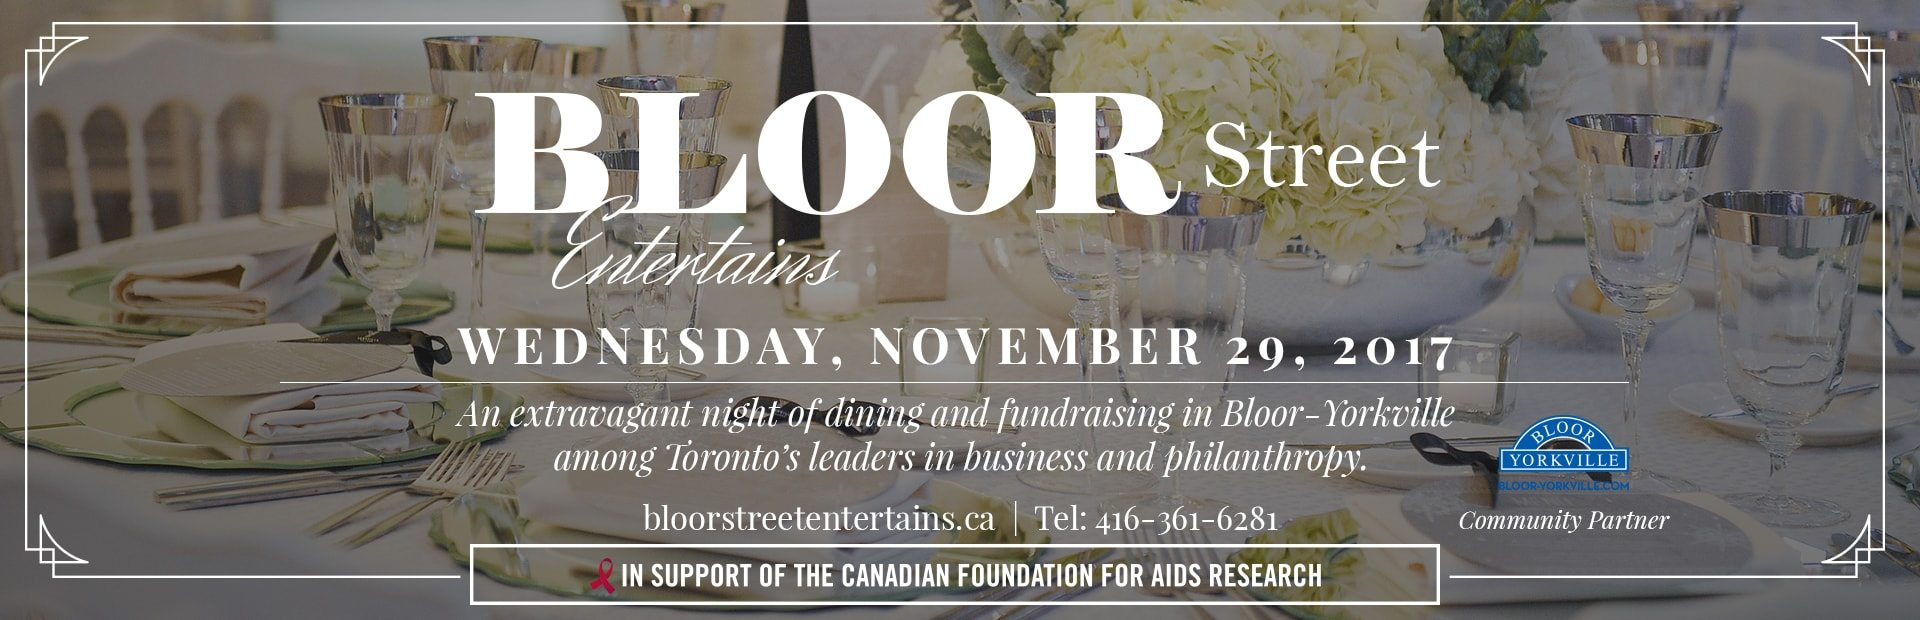 "CHANGE OF LOCATION: BLOOR STREET ENTERTAINS ""AFTER PARTY"" MOVES TO THE ICONIC FOUR SEASONS HOTEL"